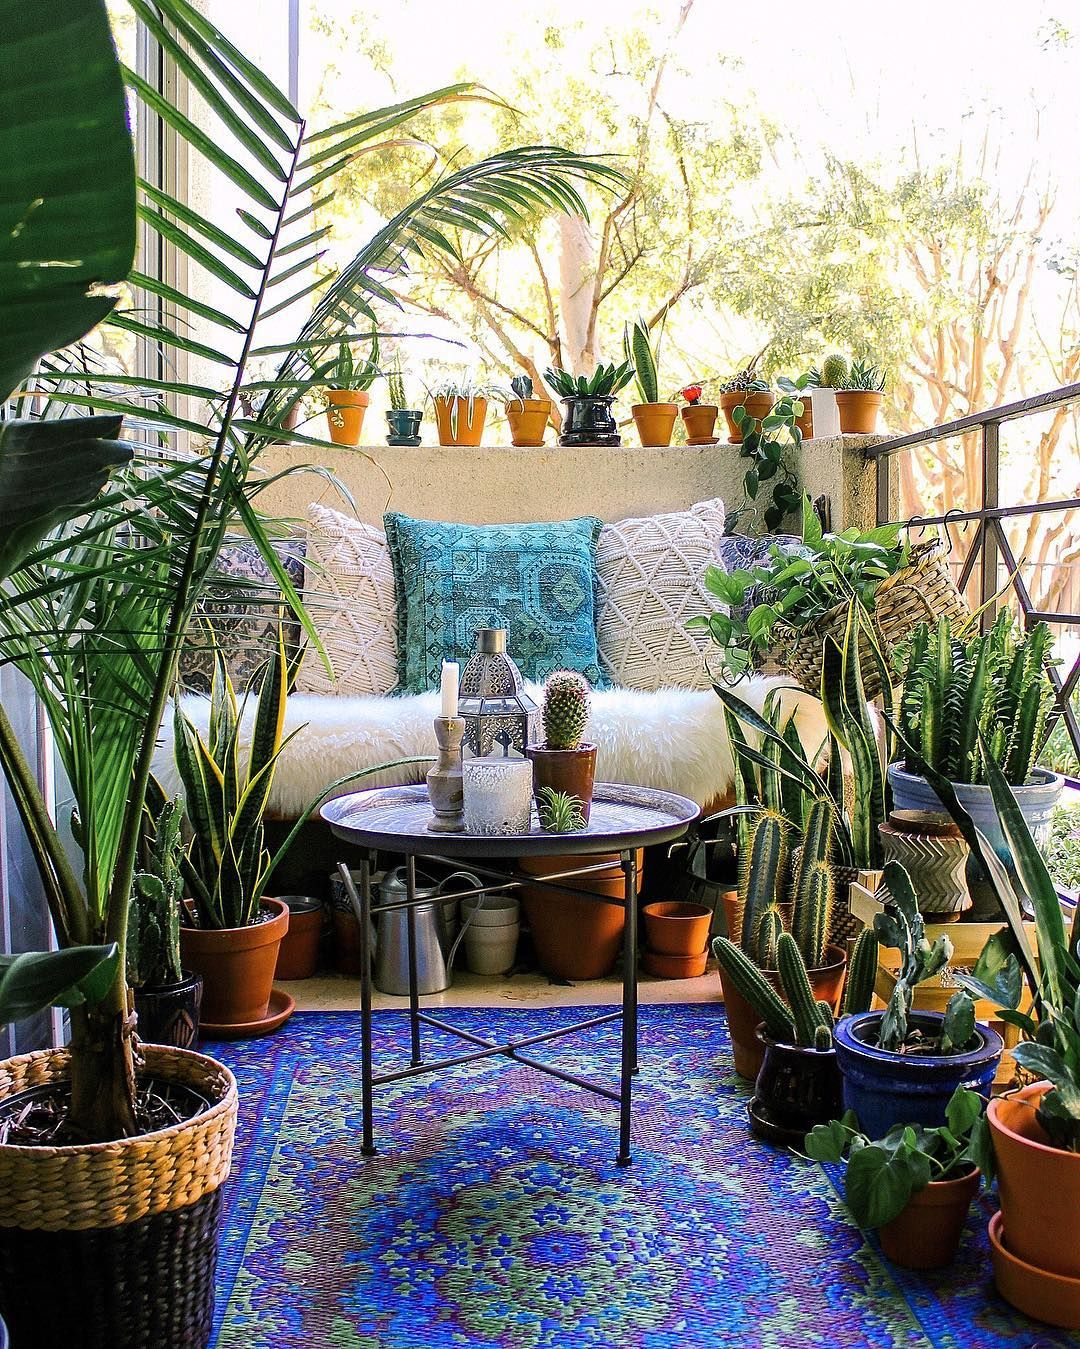 Boho Balcony See Instagram Photos And Videos From Sara Toufali Saratoufali Boho Outdoor